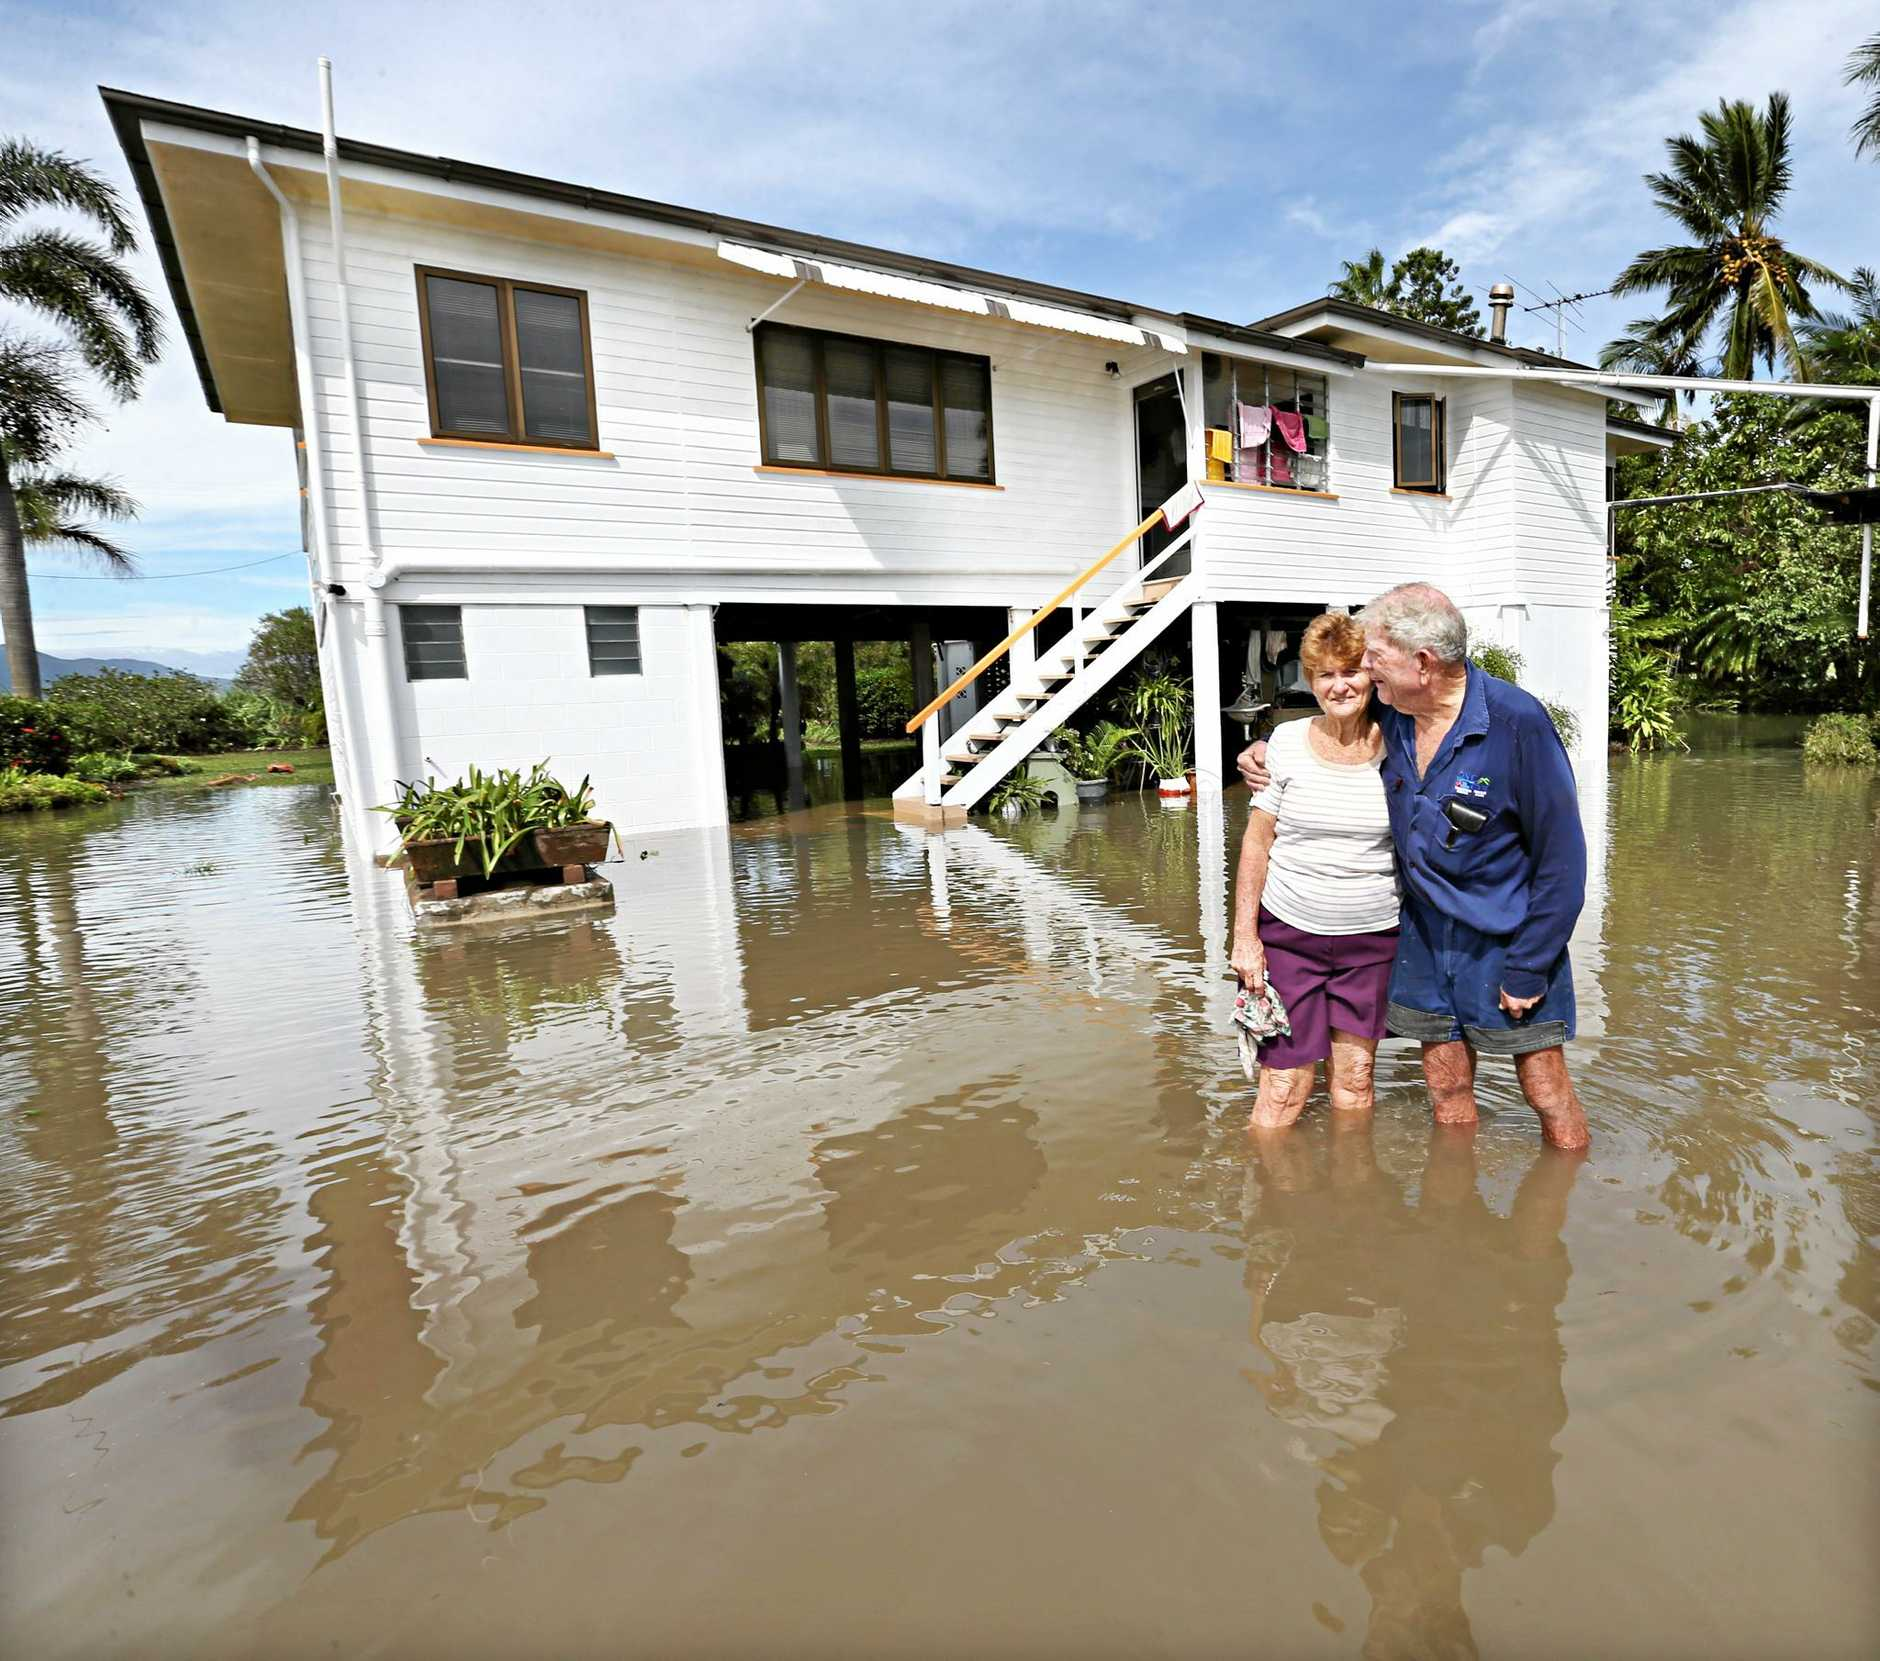 Cyclone coverage Alan and Beverley Creber at their home thtas Flooding in North Eton near Mackay. Pic Annette Dew